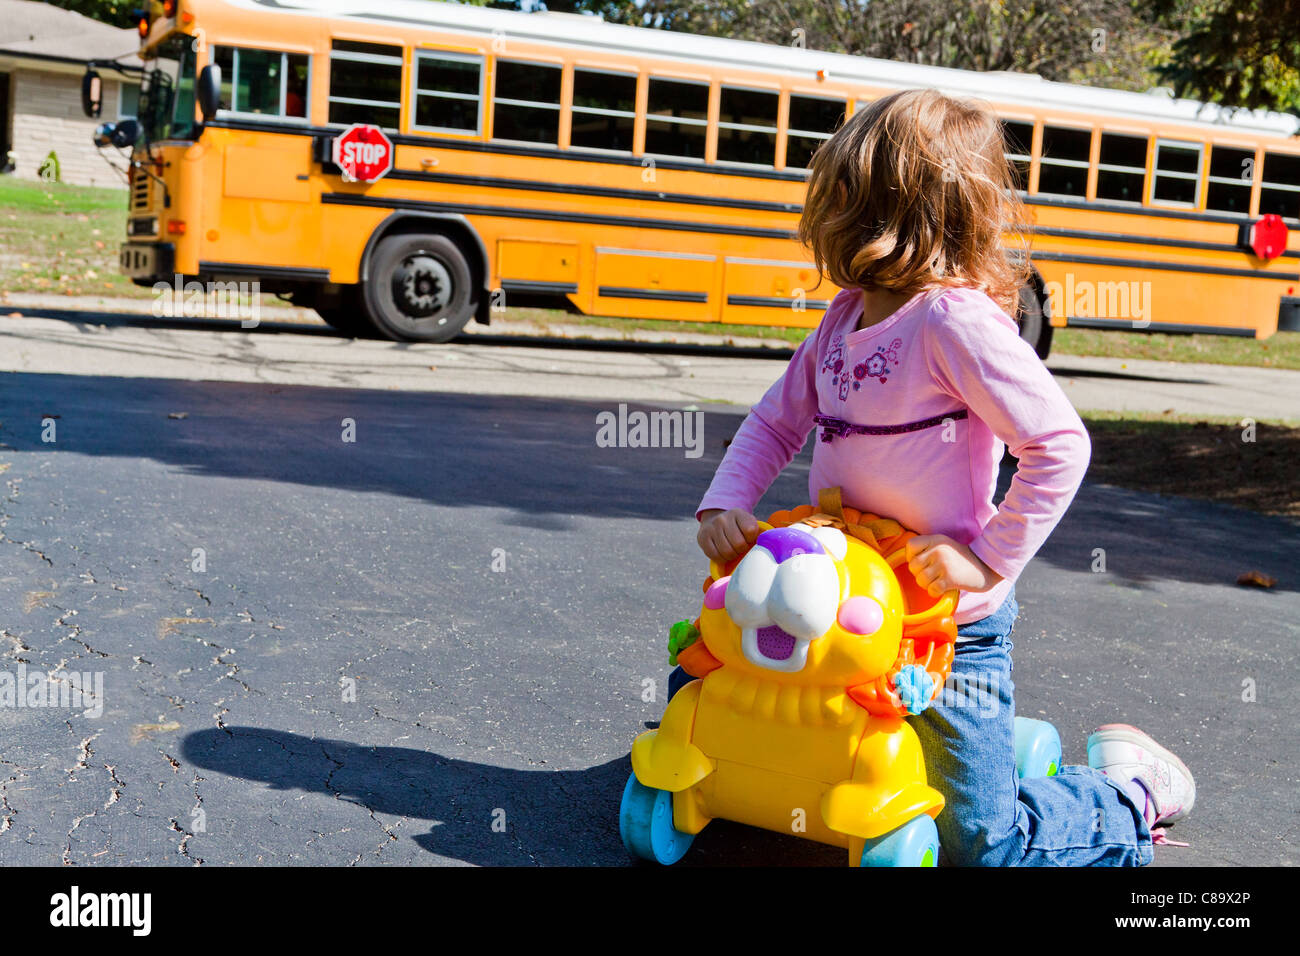 A four and a half year old little girl sits on a riding toy in her driveway turns to look at a yellow school bus Stock Photo